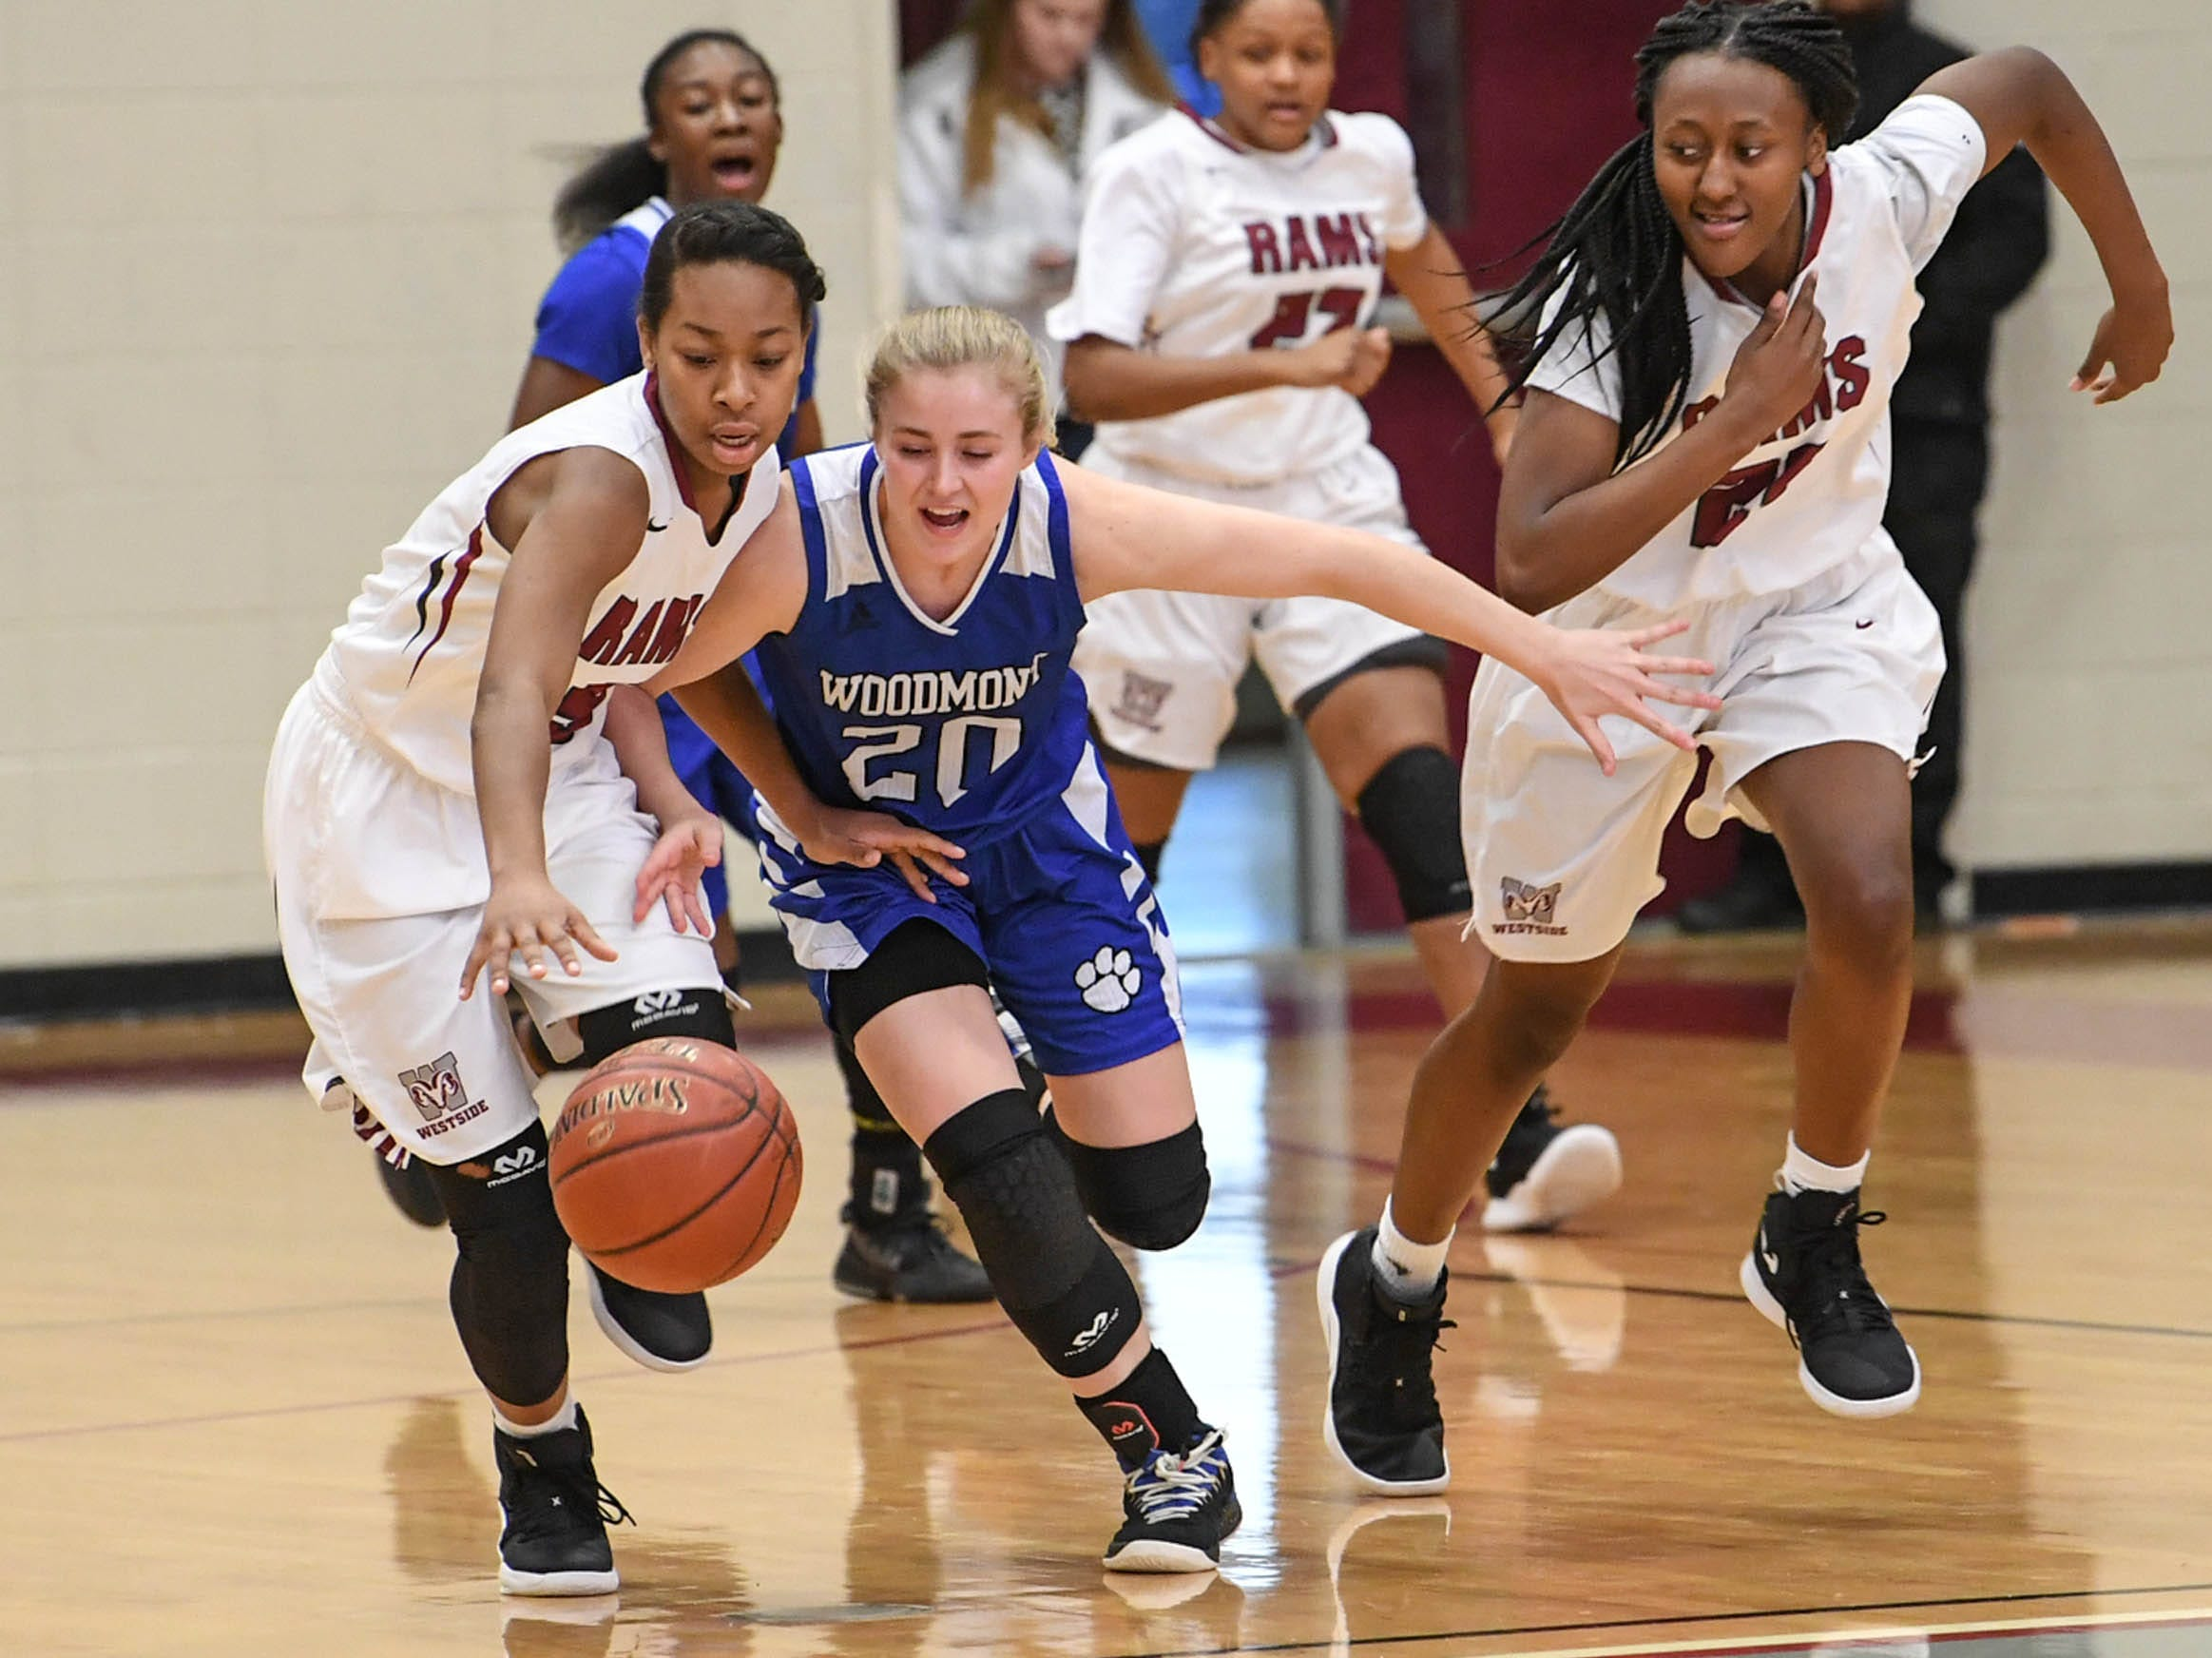 Westside senior Chelsea Adger(5), left, and Woodmont senior Xan Rowland(20)reach for a loose ball during the first qua rter at Westside High School in Anderson on Tuesday.